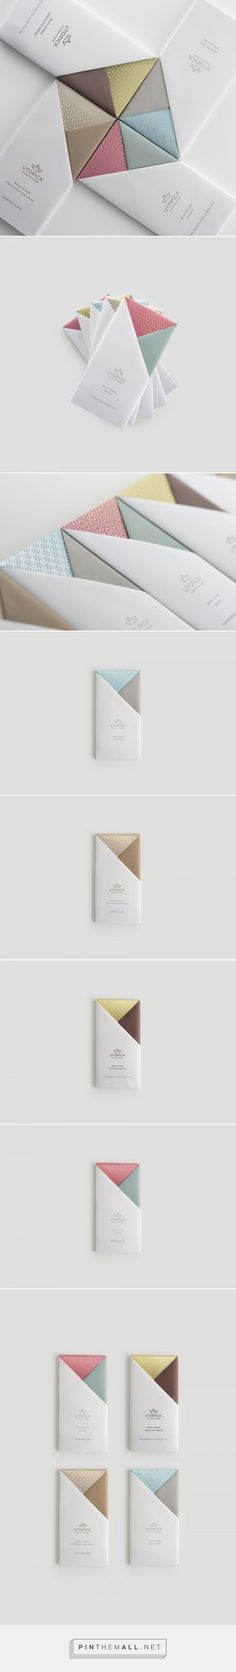 A Lovely Chocolate Bar that's Packaged with Origami / Designed by Lavernia